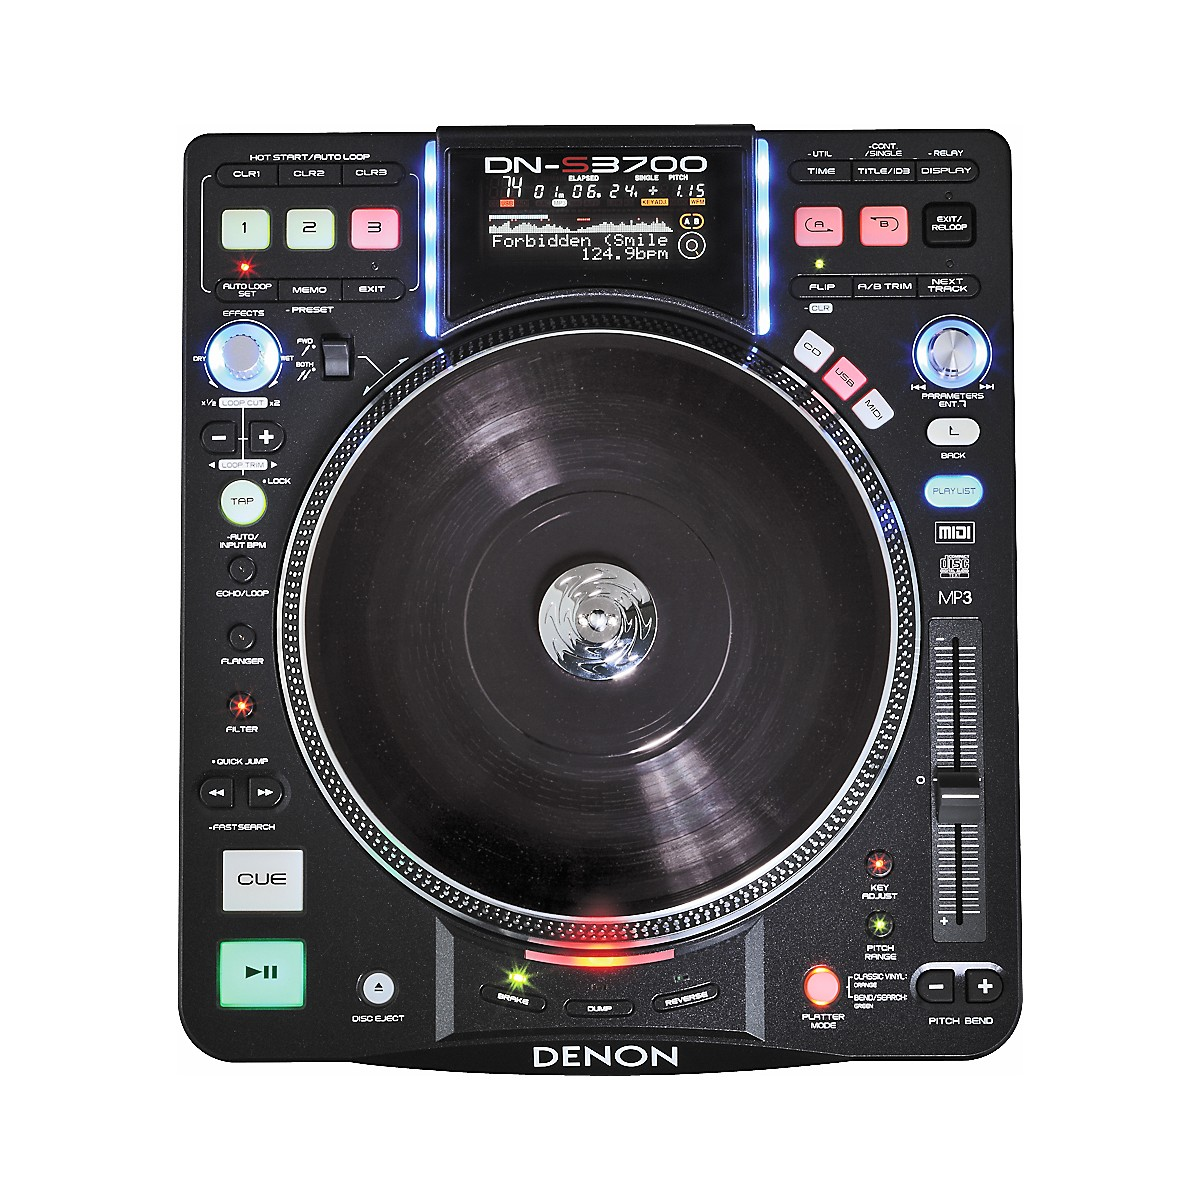 Denon DJ DN-S3700 Digital Turntable Media Player and Controller